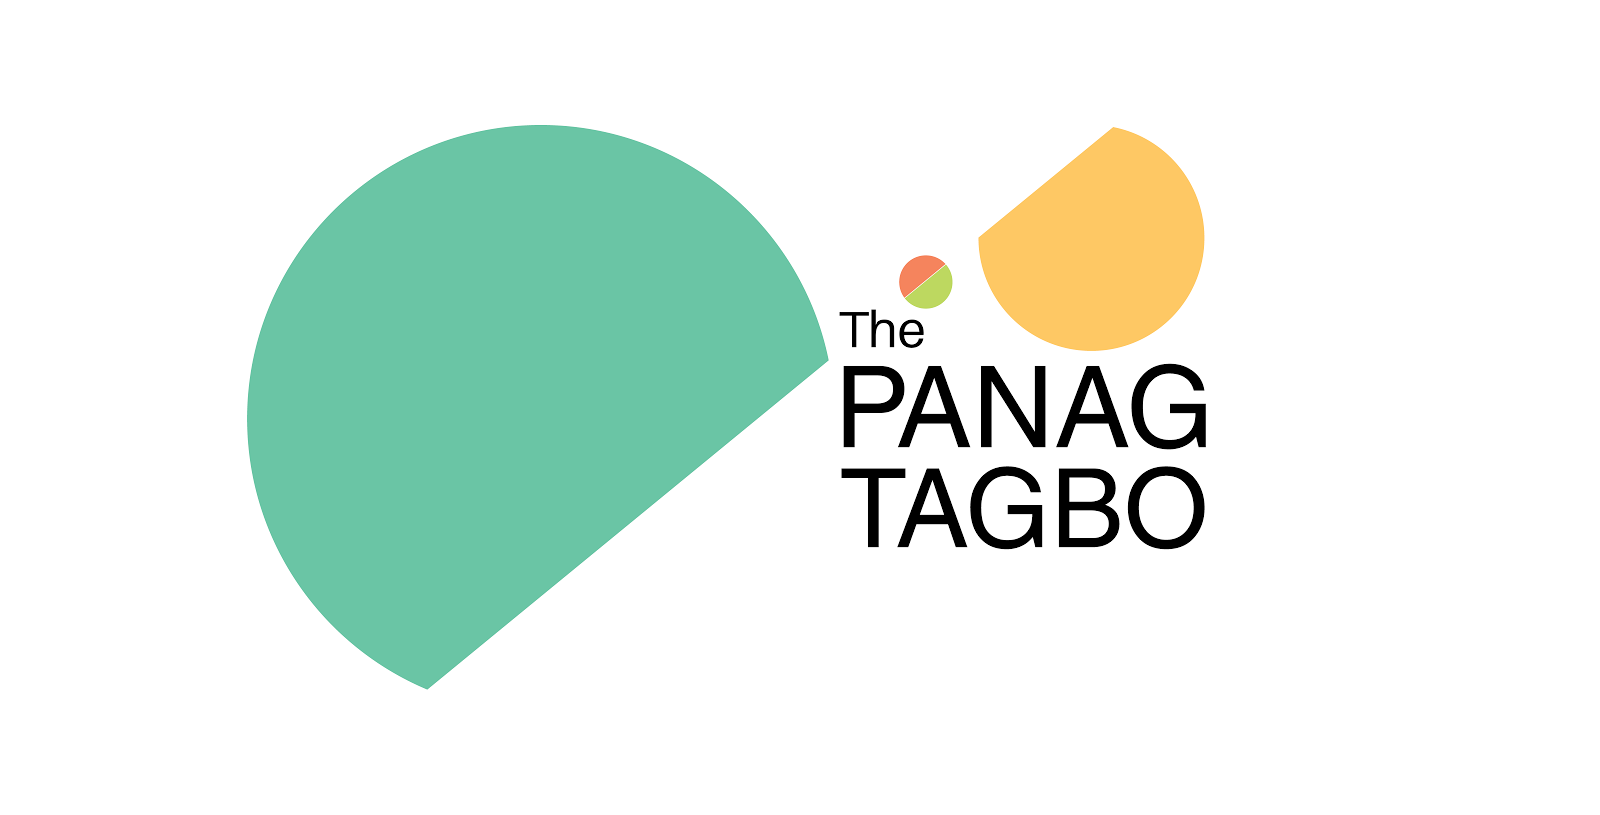 The Panagtagbo